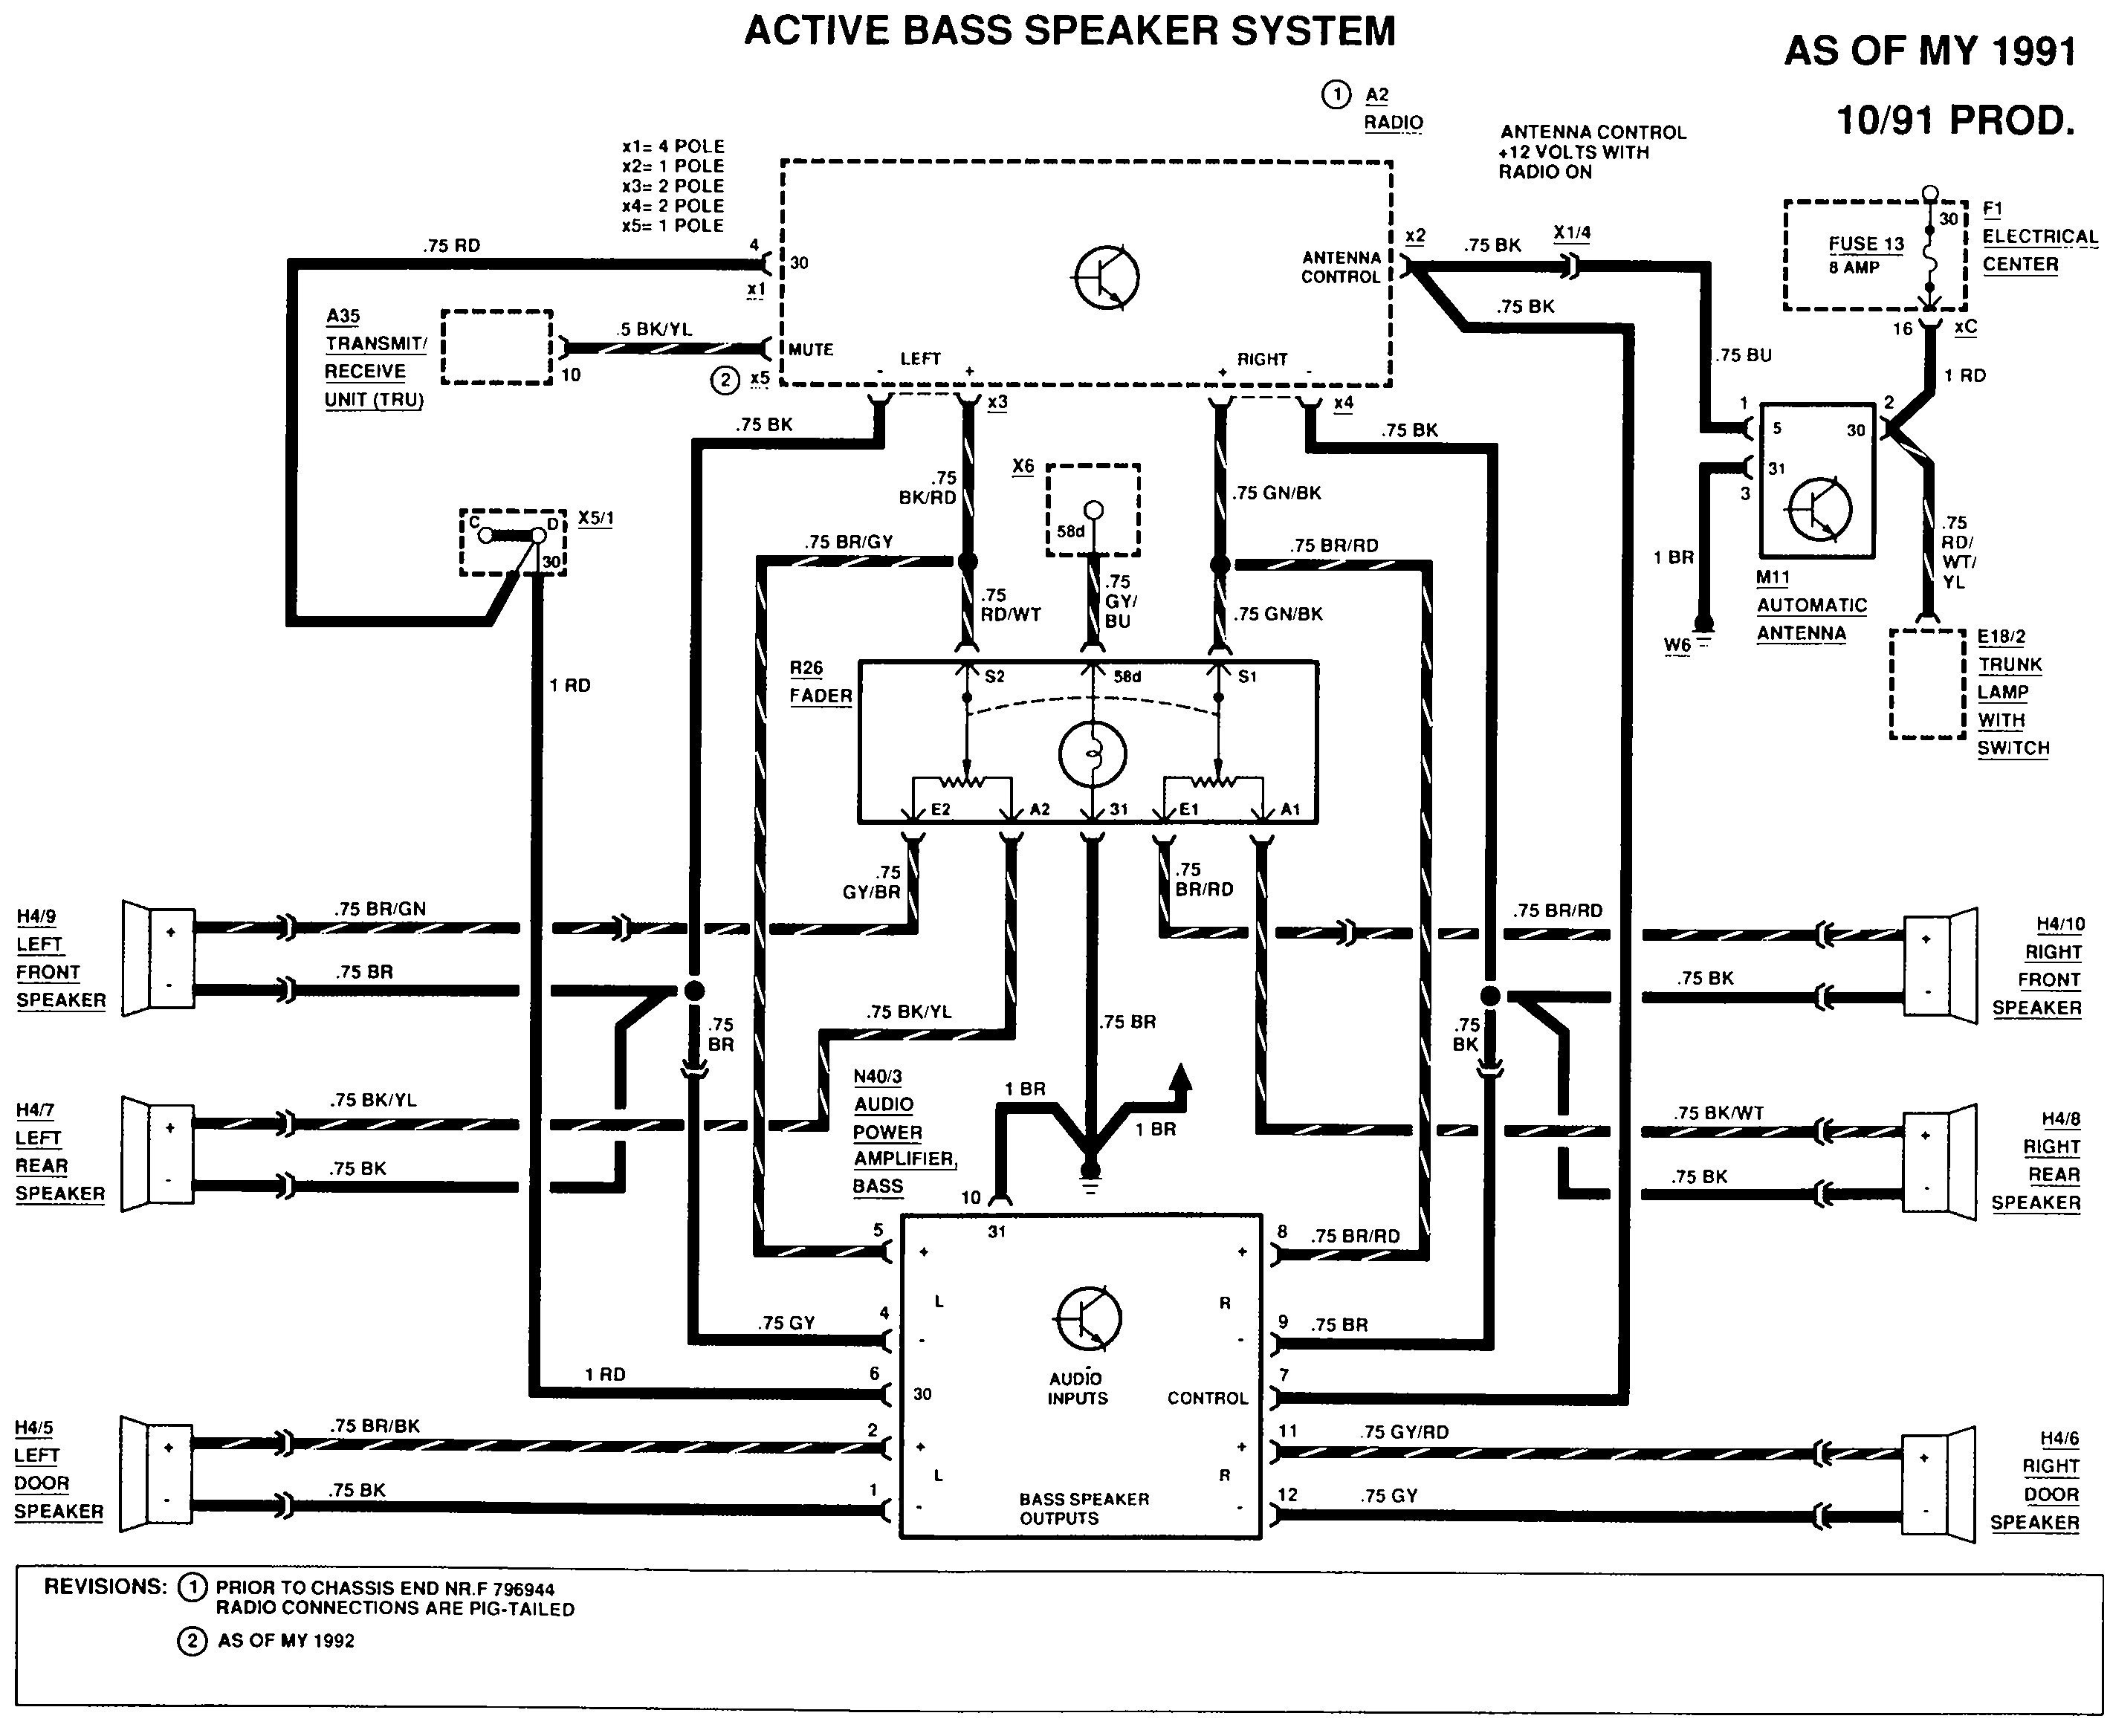 Mercedes Benz Cruise Control Wiring Diagram Data Wiring Diagrams •